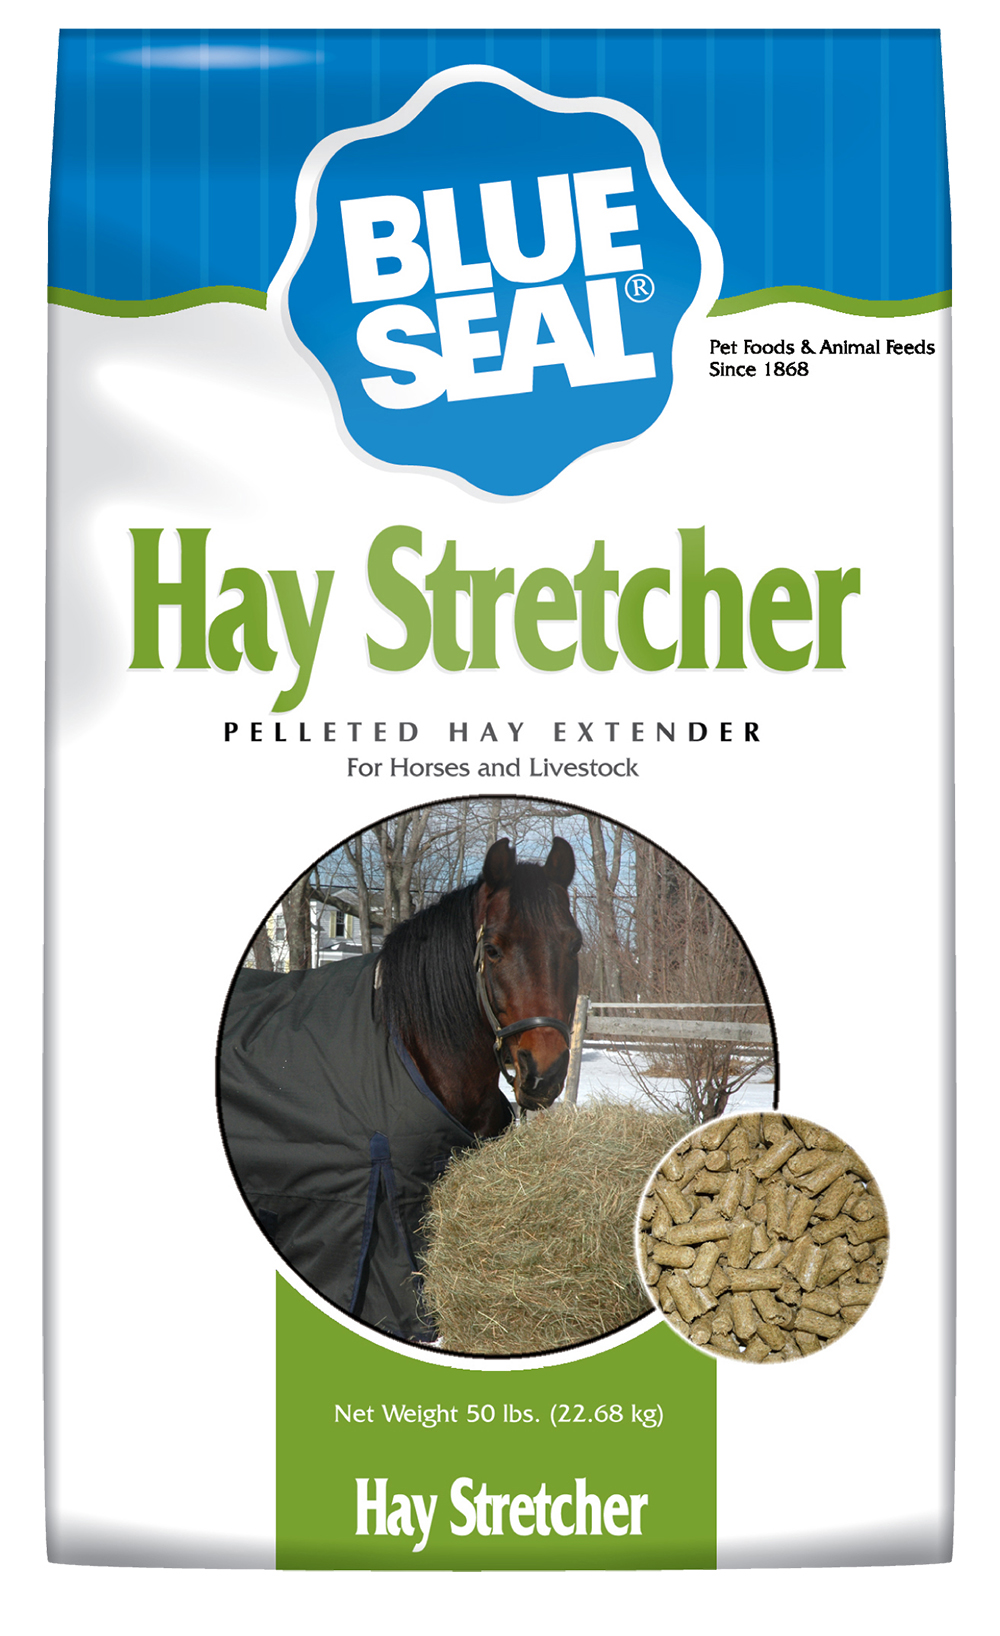 Royal Canin Puppy Food >> Blue Seal Hay Stretcher Pellet 50 lb.